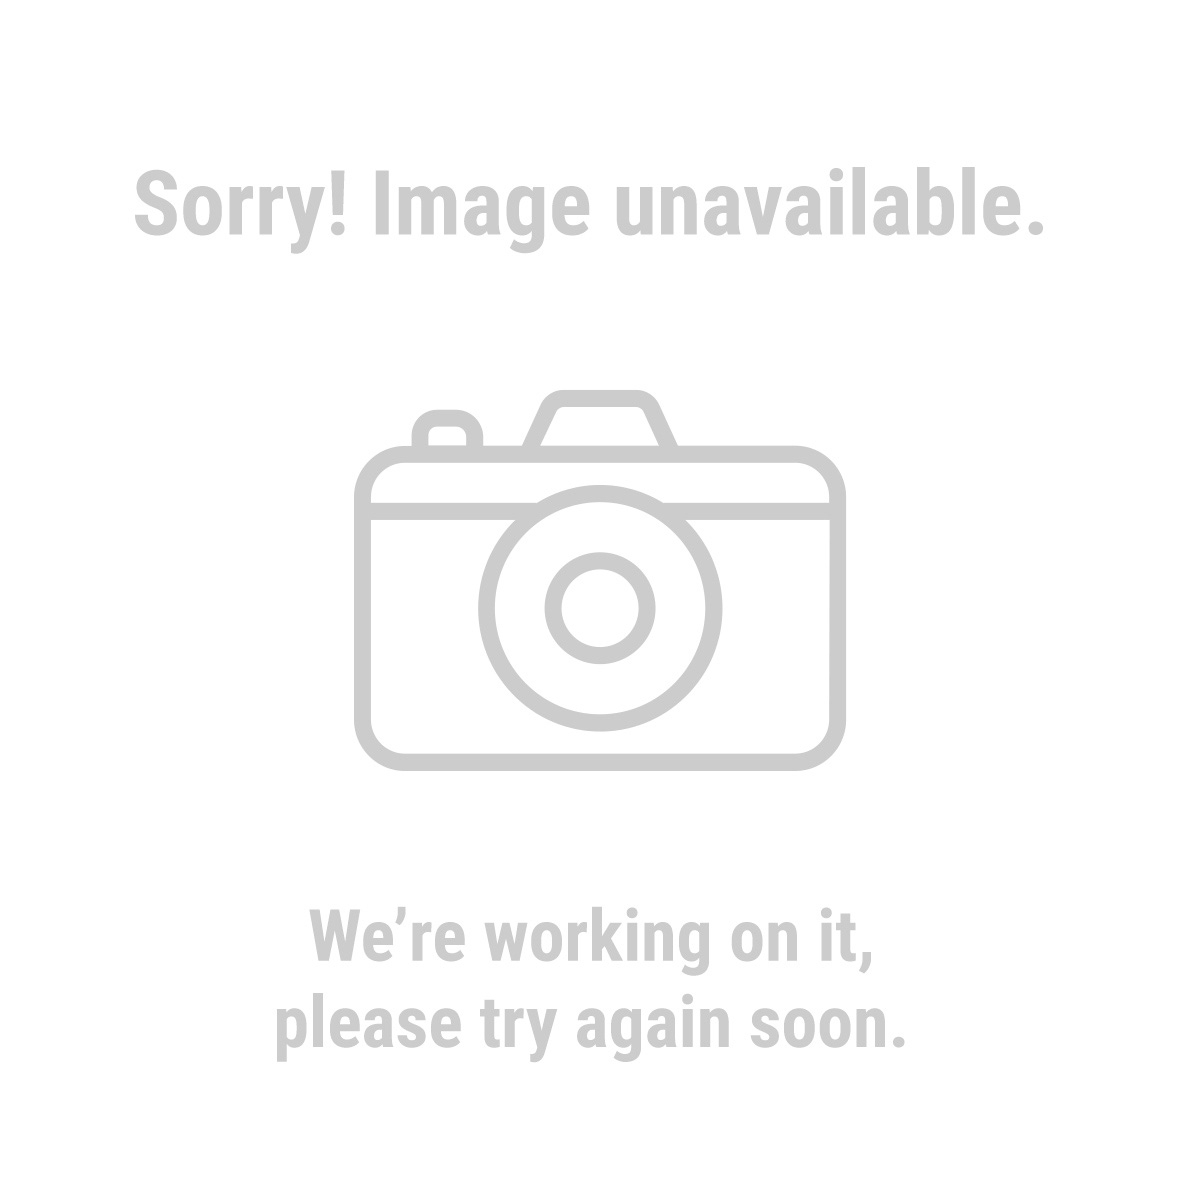 Chicago Electric Welding 67854 Auto Darkening Welding Helmet with Racing Stripe Design